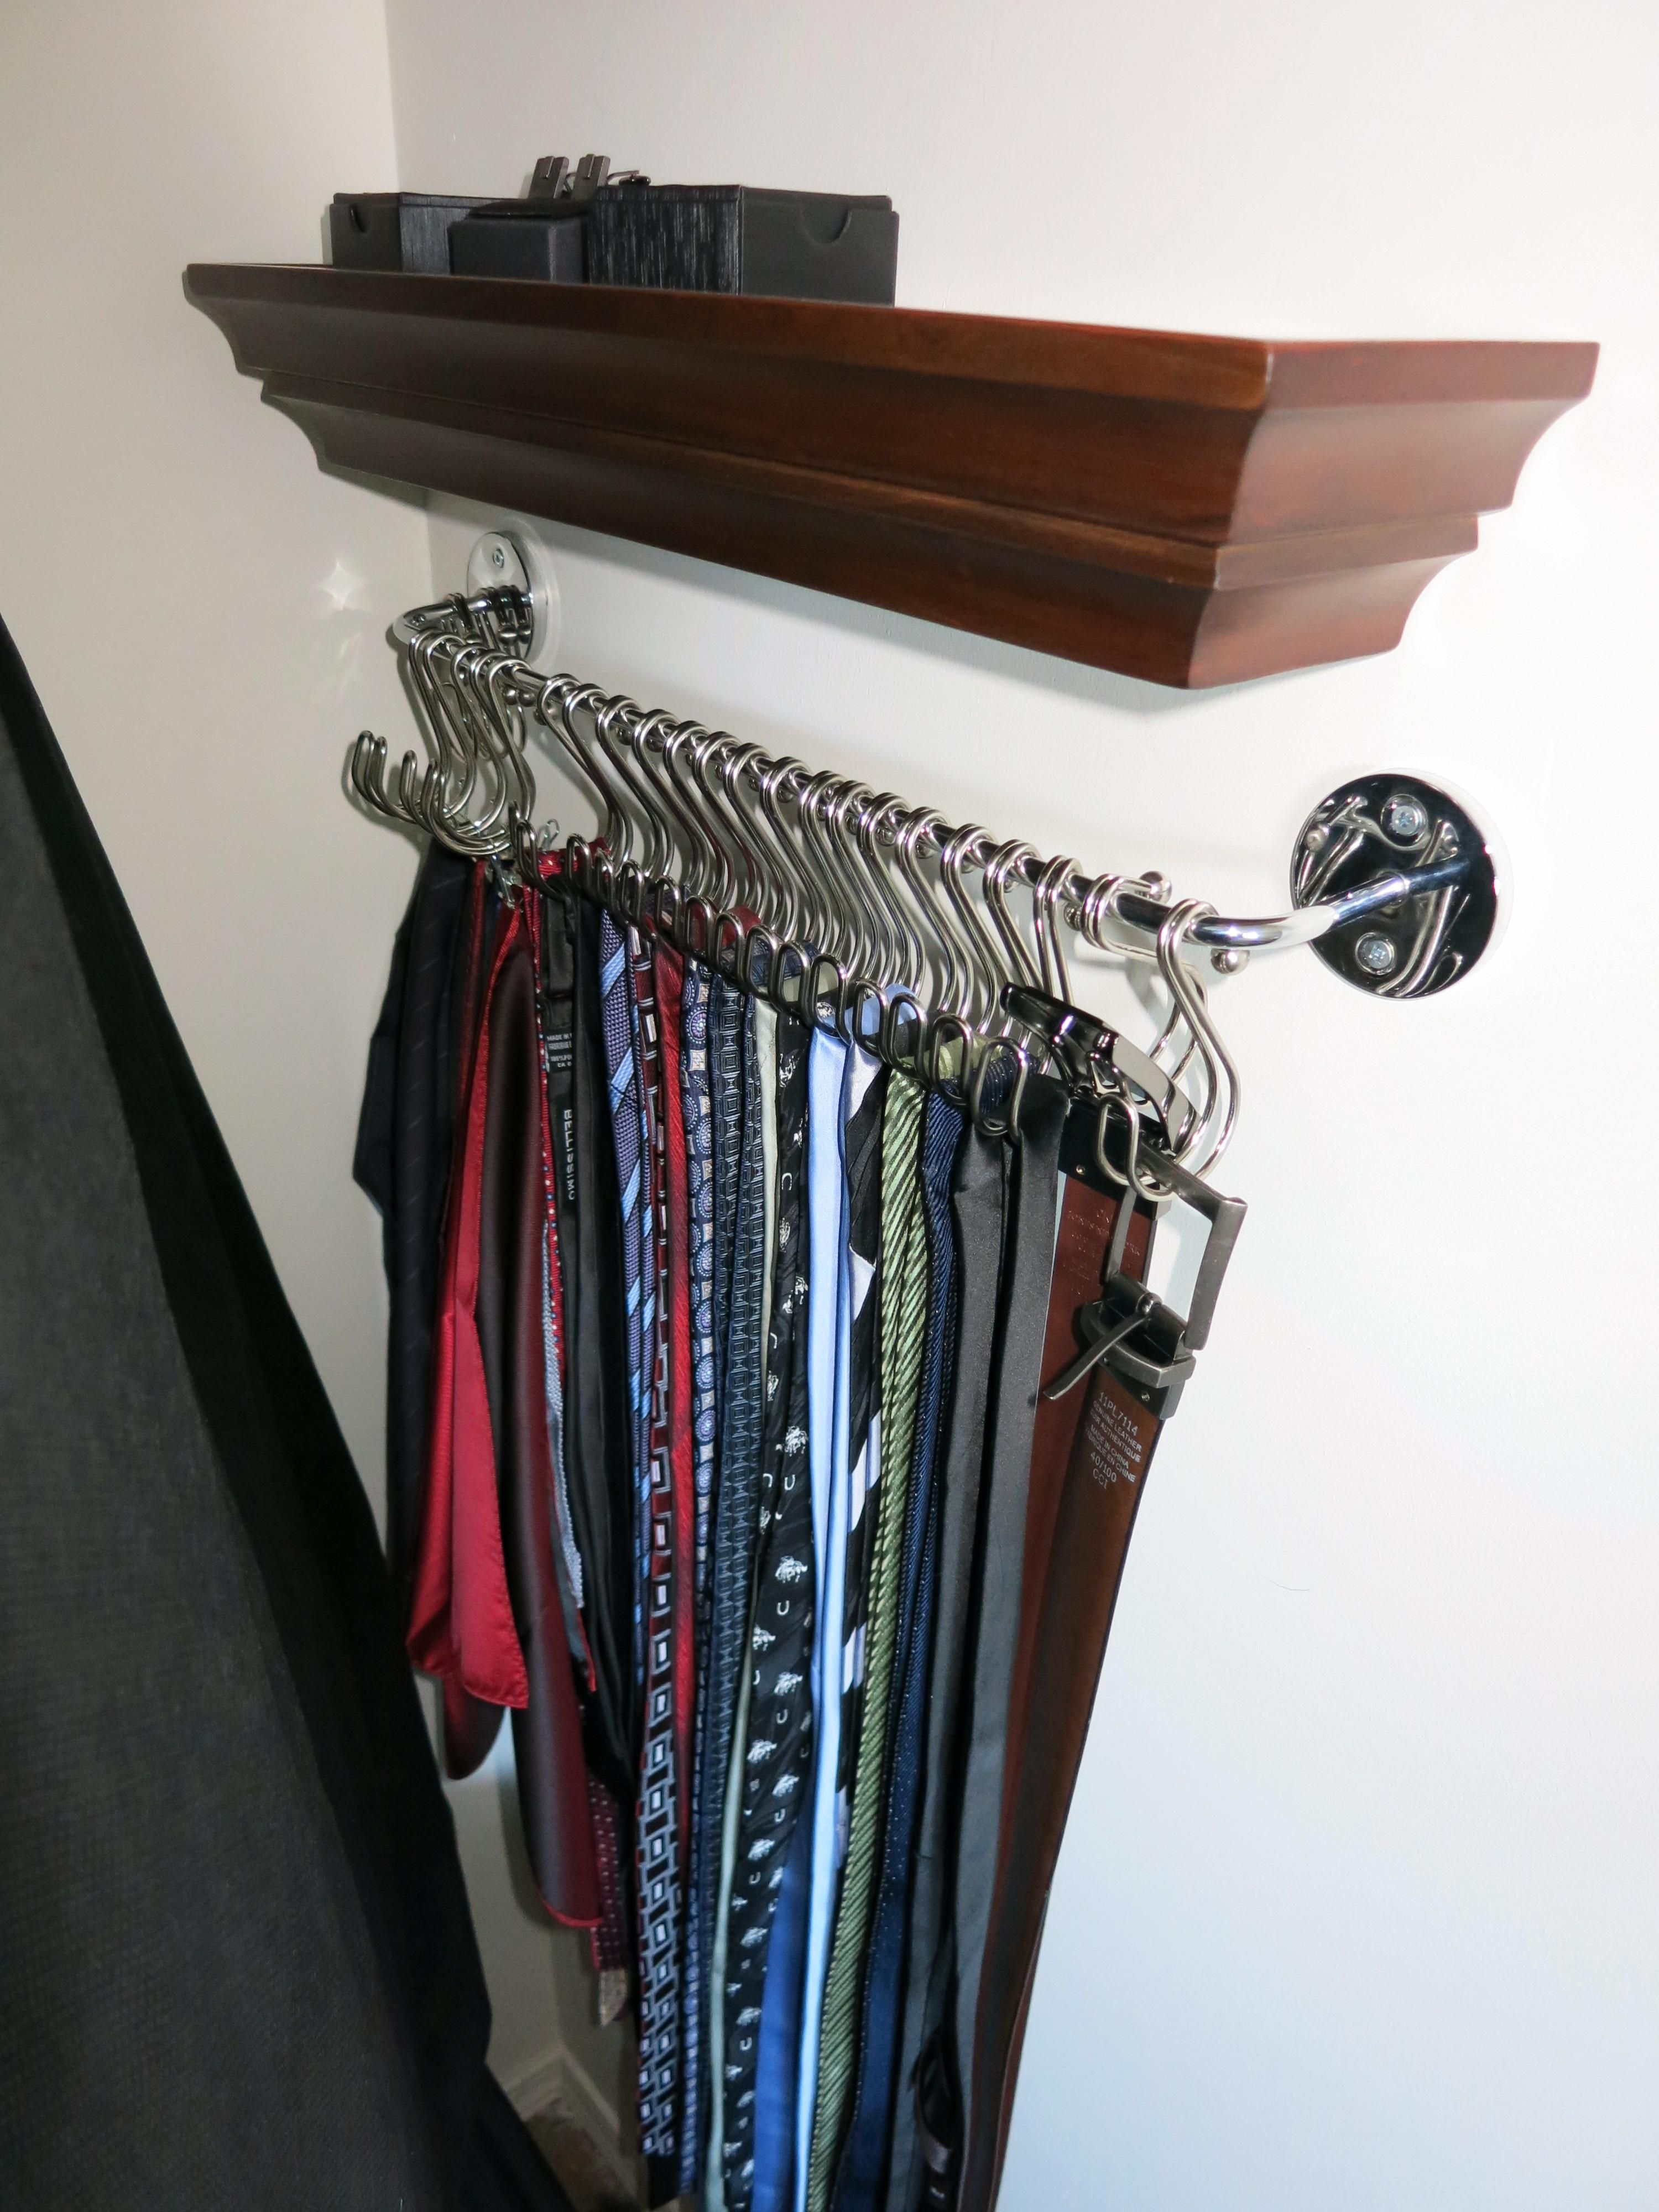 I Need A Way To Organize And Store My Ties, Belts, Pocket Squares,